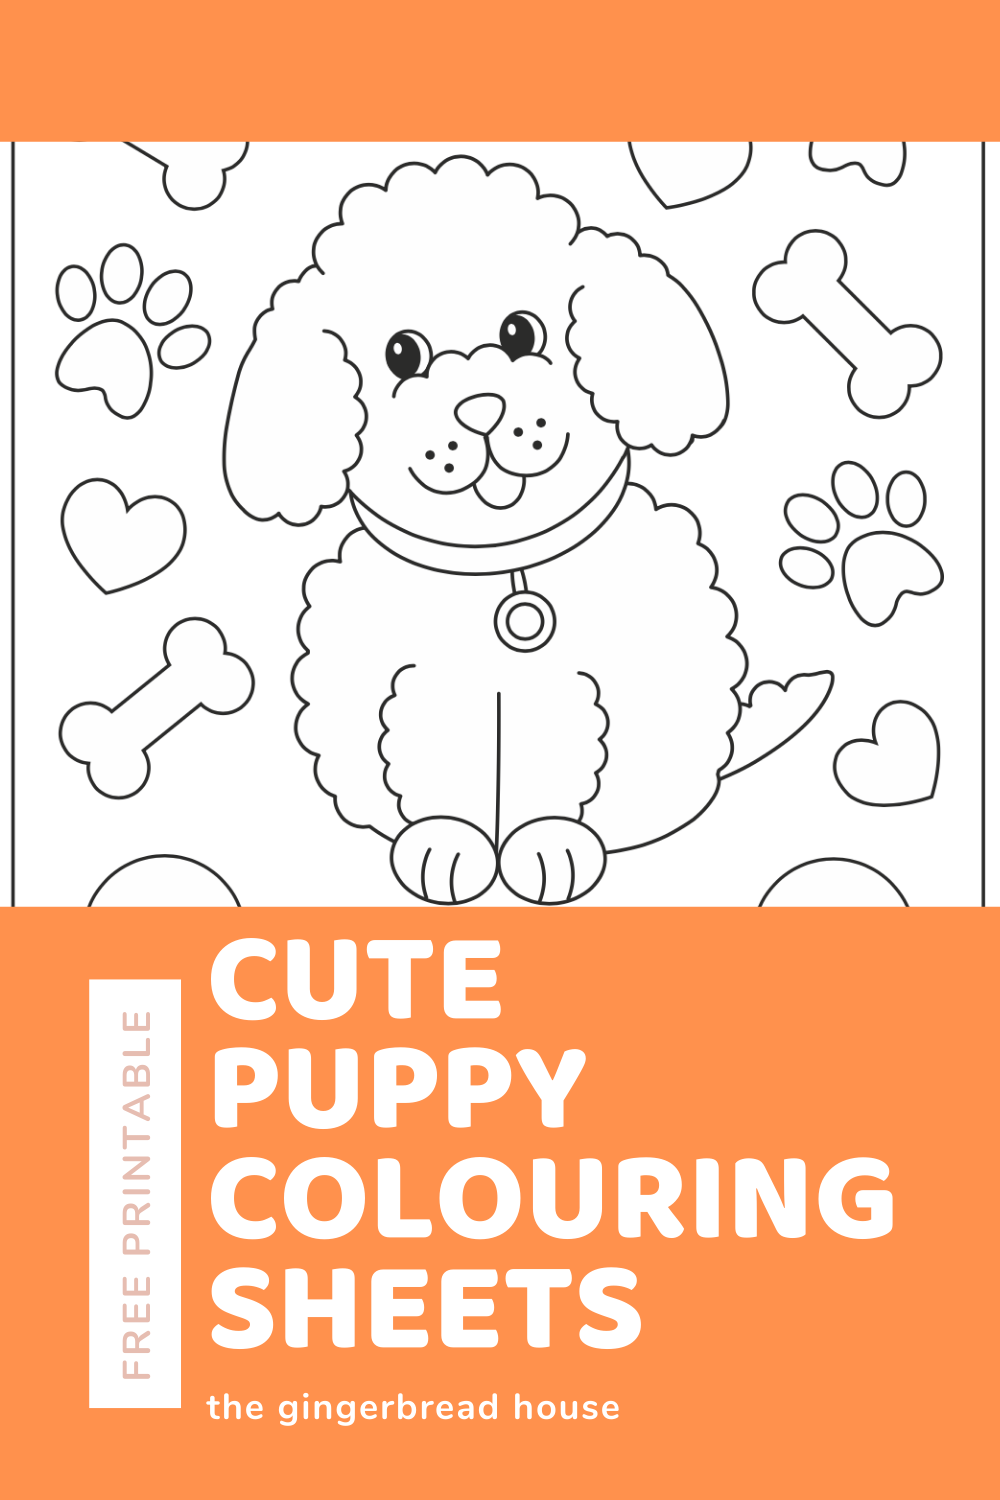 Free puppy colouring sheets - the gingerbread house